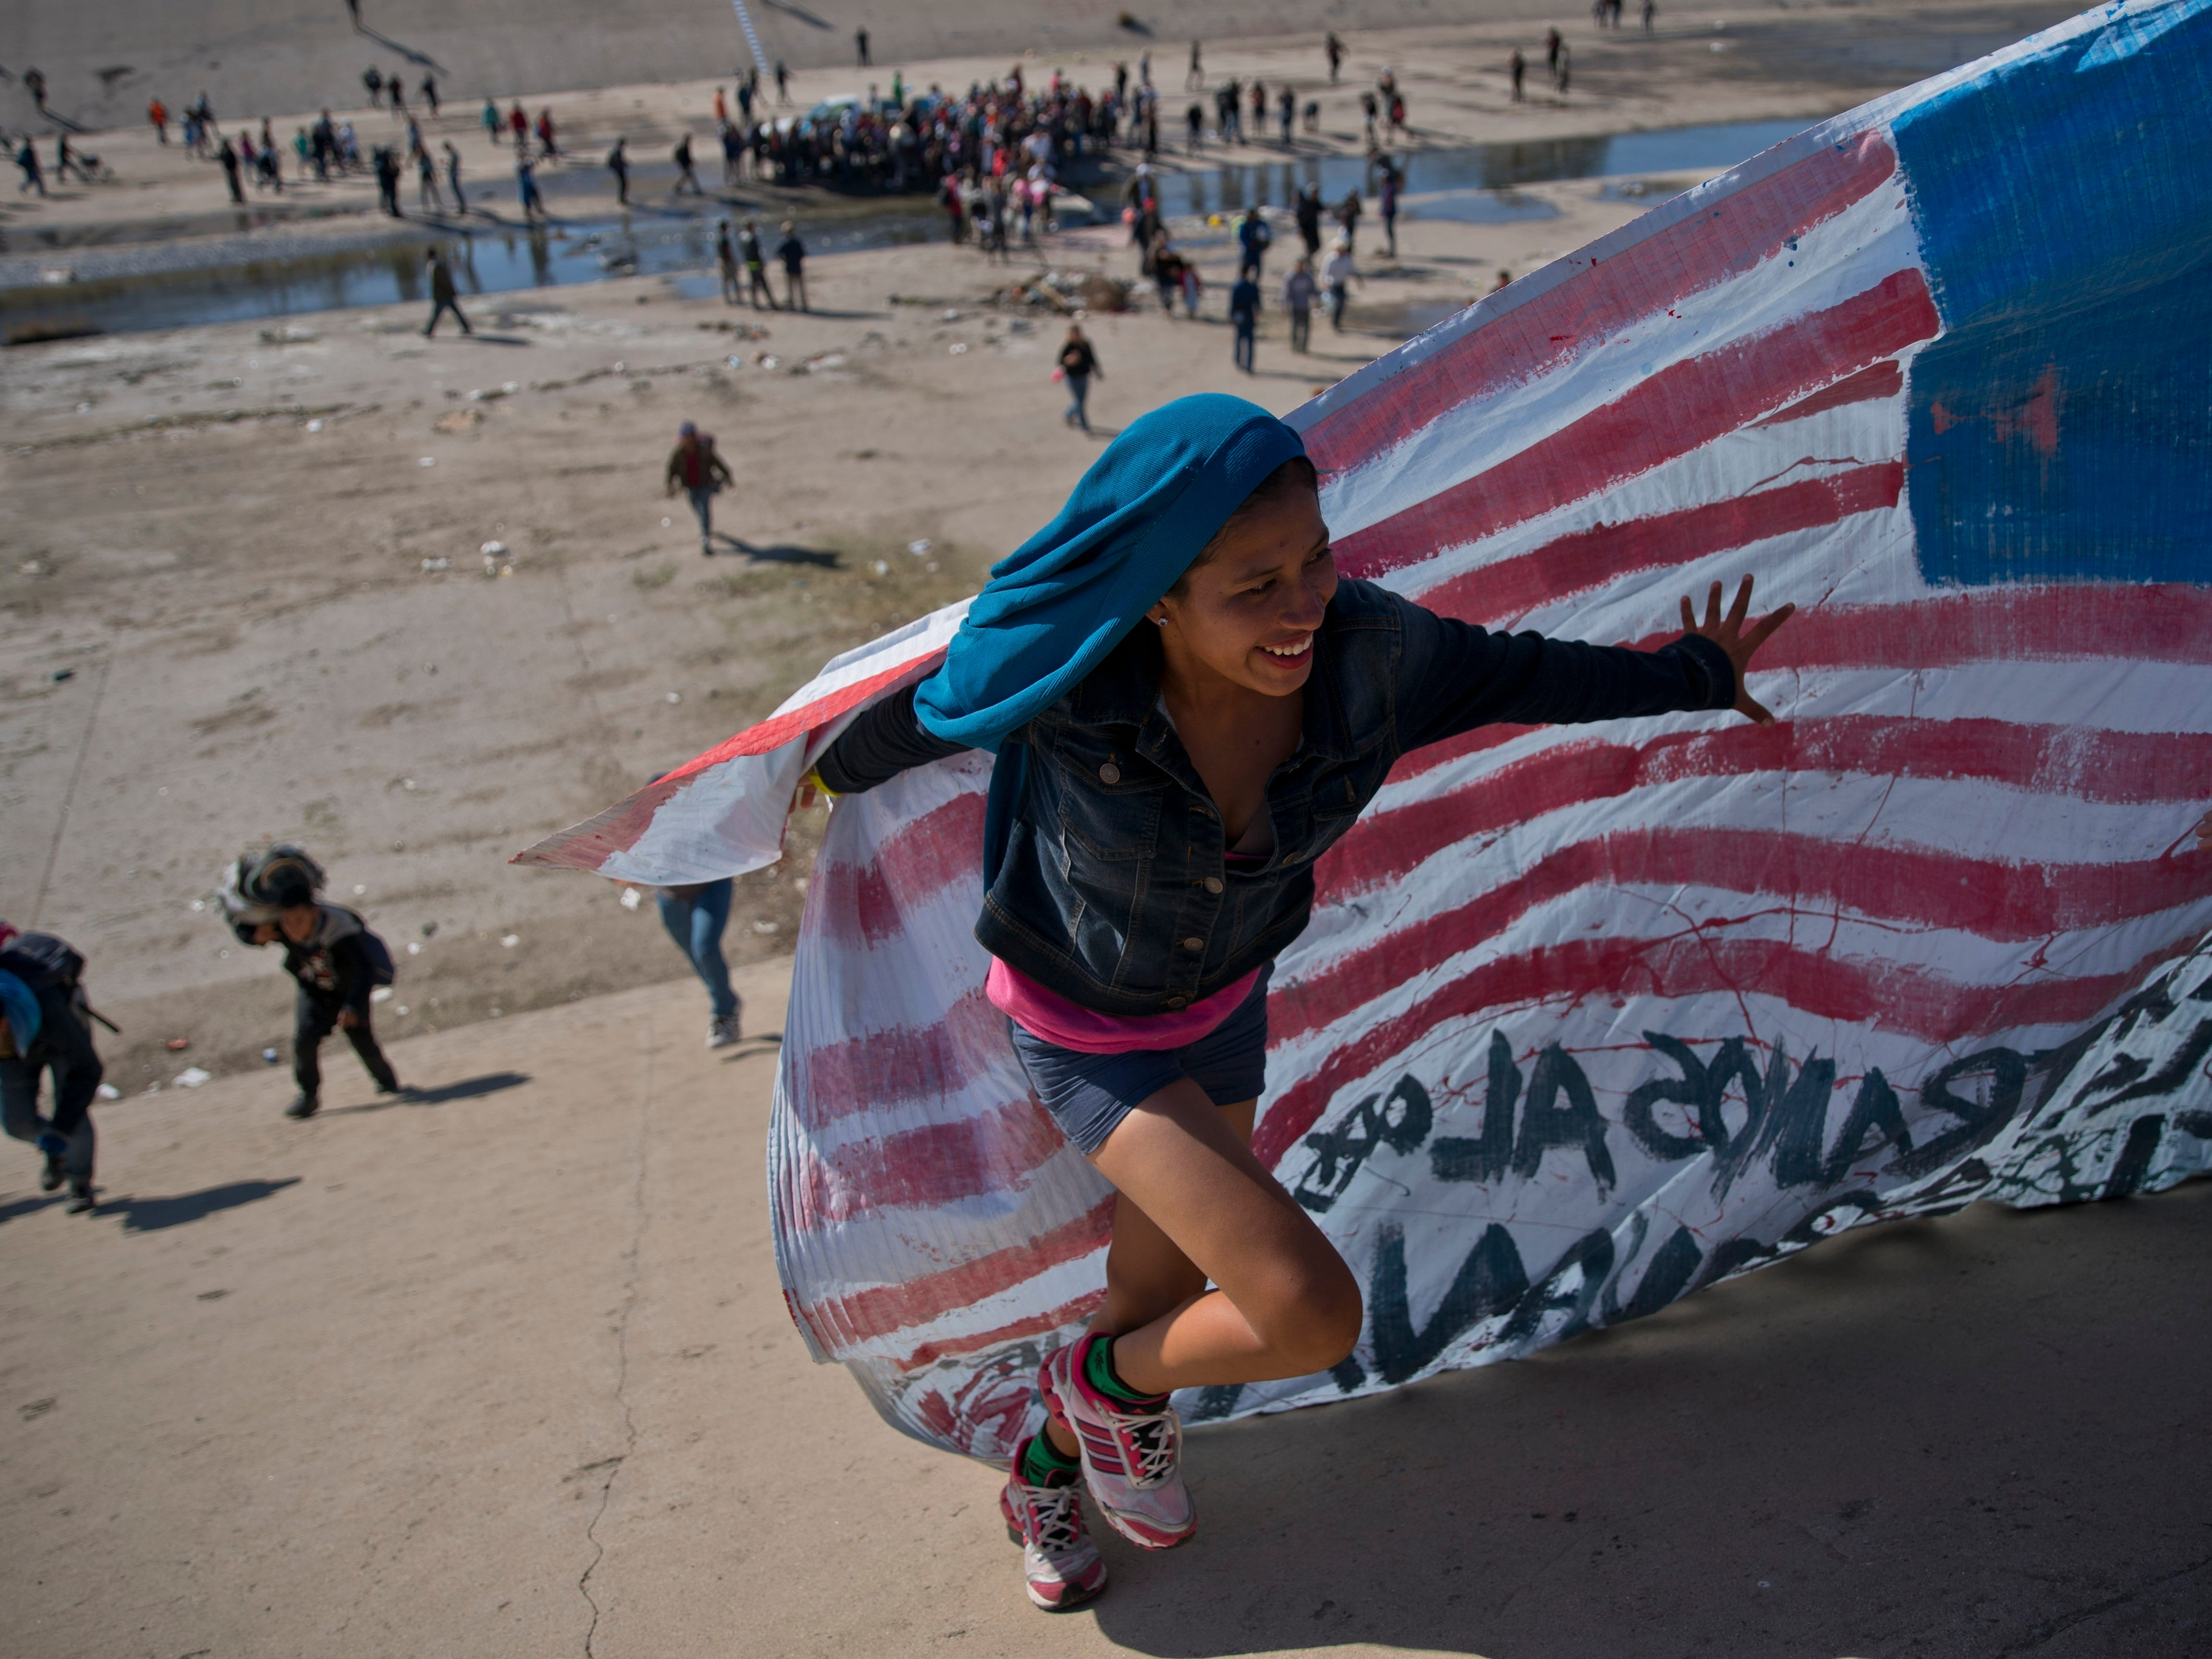 A migrant woman helps carry a handmade U.S. flag up the riverbank at the Mexico-U.S. border after getting past Mexican police at the Chaparral border crossing in Tijuana, Mexico, on Nov. 25, 2018, as a group of migrants tries to reach the U.S.